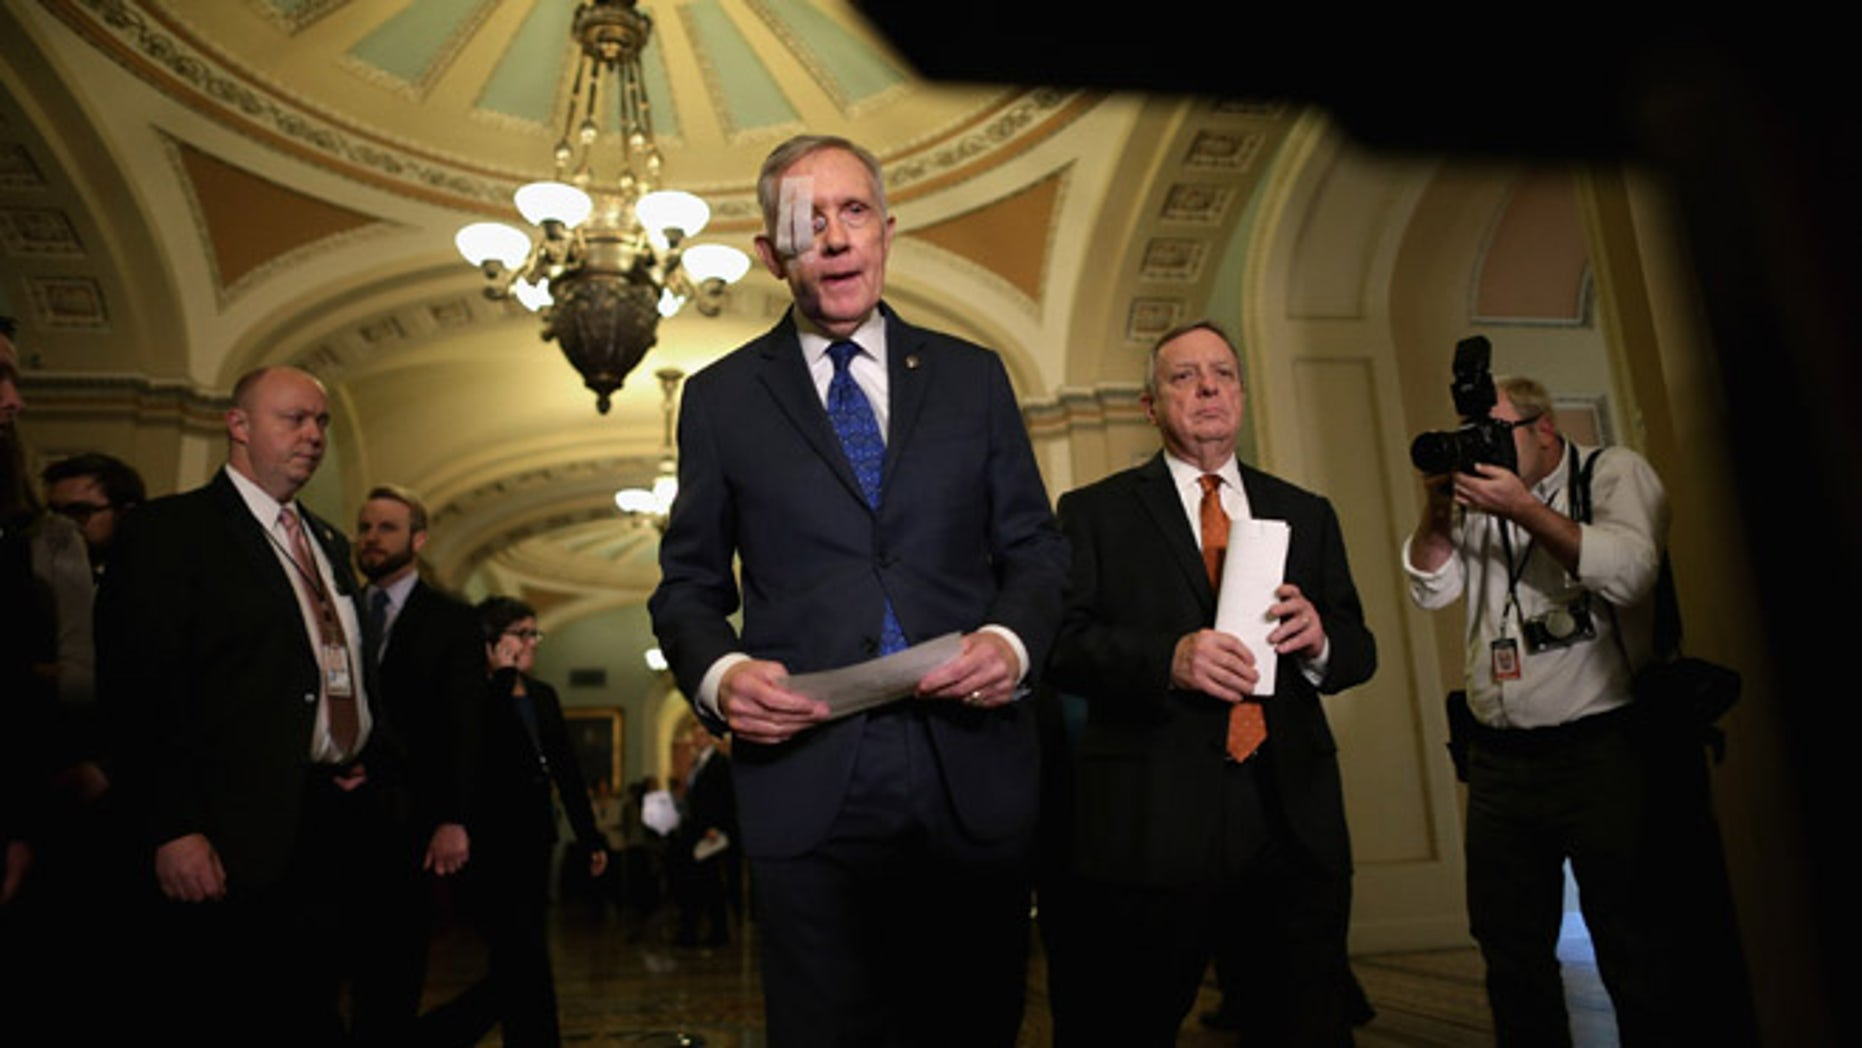 WASHINGTON, DC - FEBRUARY 03:  Senate Minority Leader Harry Reid (D-NV) (C) and Senate Minority Whip Richard Durbin (D-IL) (2nd R) arrive for a news conference after the weekly Democratic Senate policy luncheon at the U.S. Capitol February 3, 2015 in Washington, DC. Reid is wearing a bandage over his right eye after undergoing surgery to repair damage from an exercise accident.  (Photo by Chip Somodevilla/Getty Images)